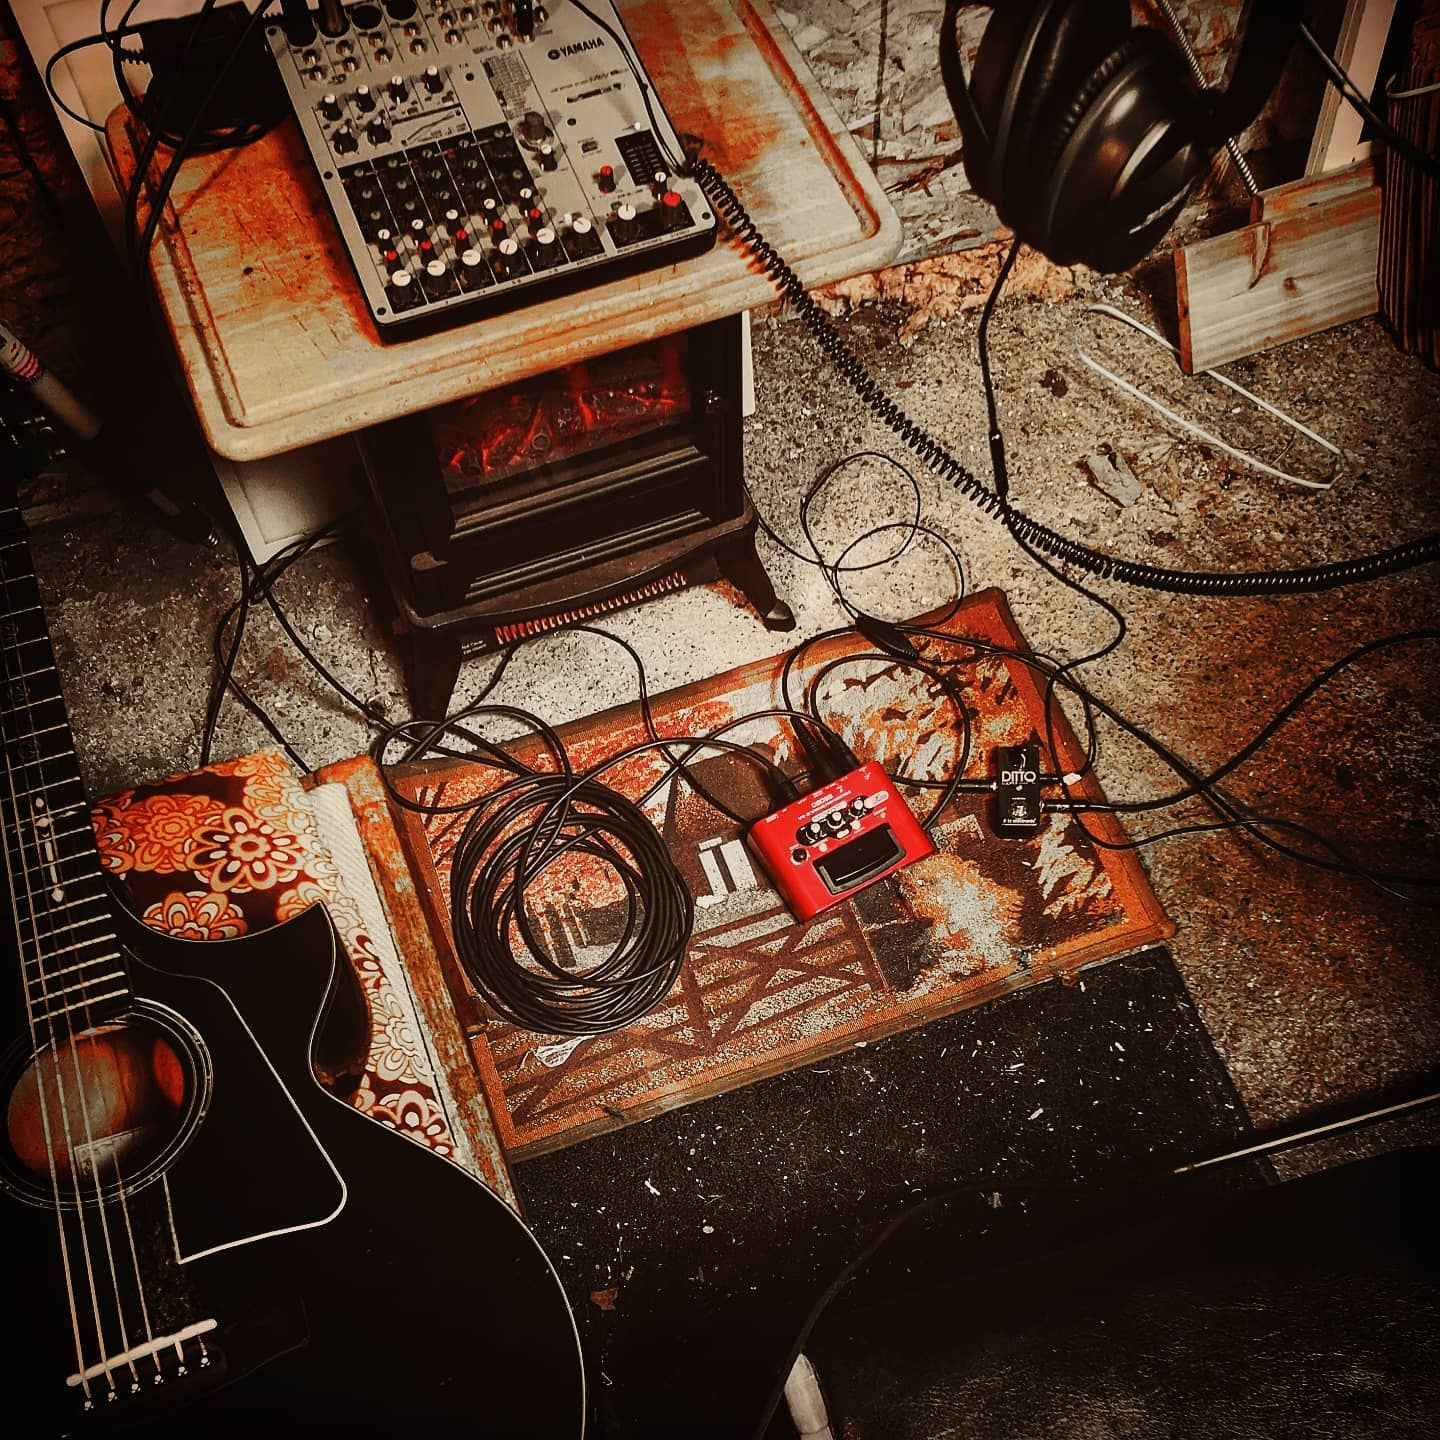 Guitar and sound set up on floor.